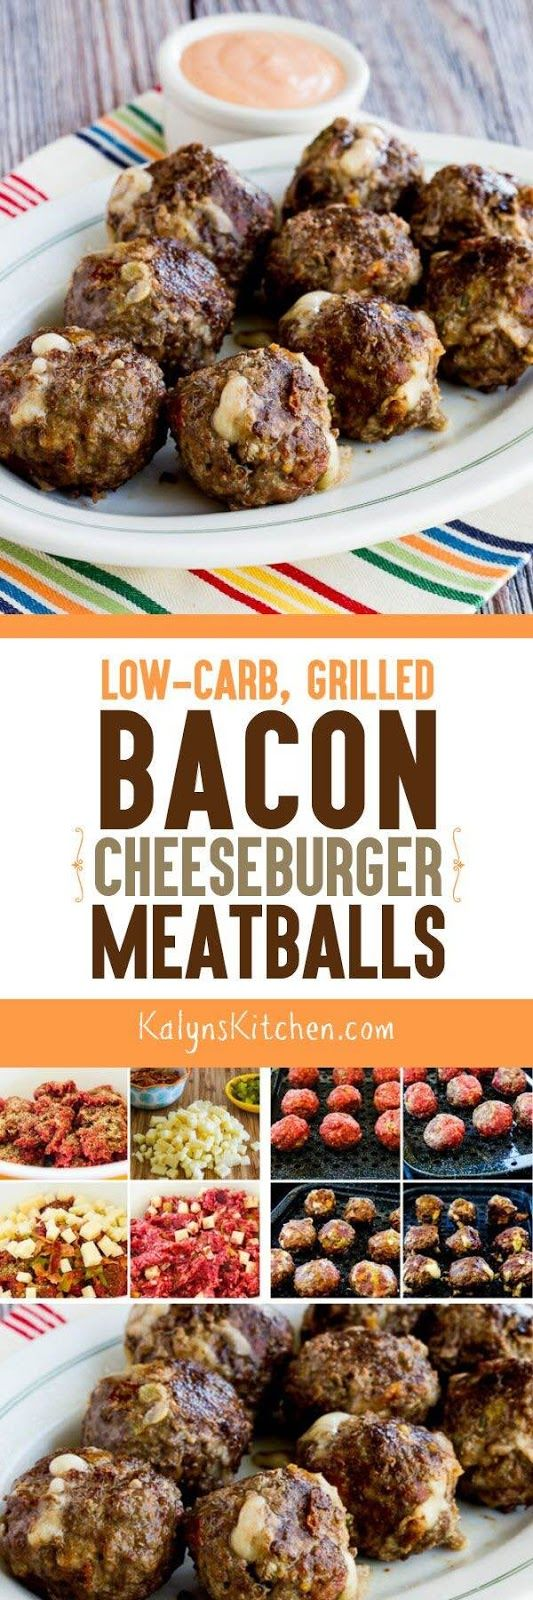 Low-Carb Grilled Bacon Cheeseburger Meatballs have comfort food written all over them! These meatballs have all the flavors of